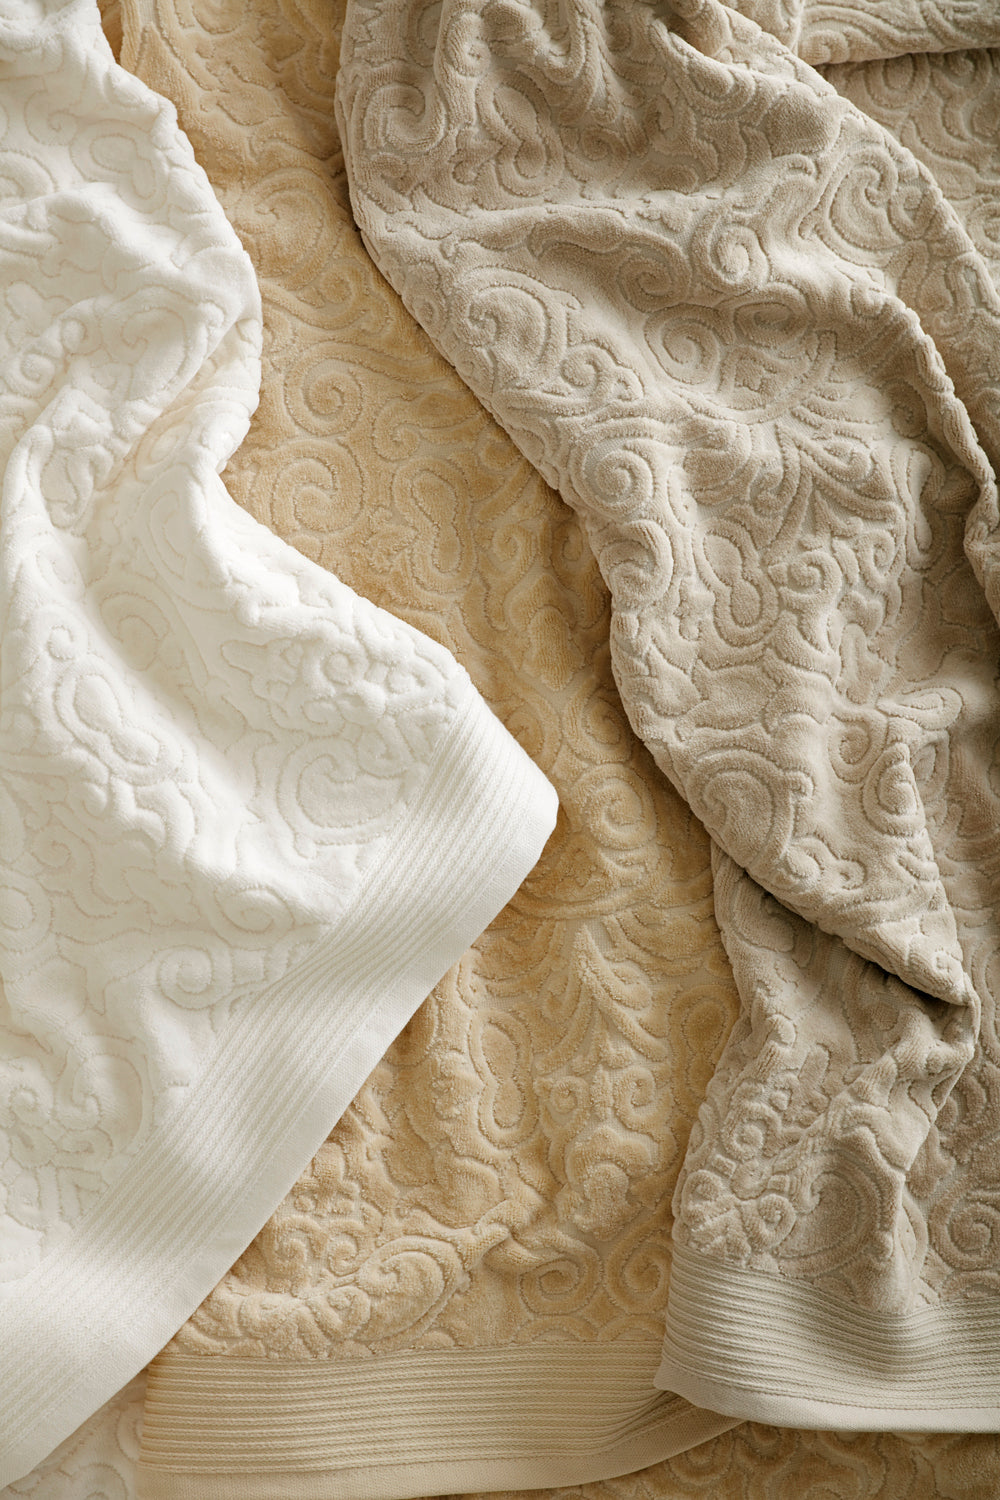 Towels in various neutral colors featuring a retro damask pattern in a sculpted velour